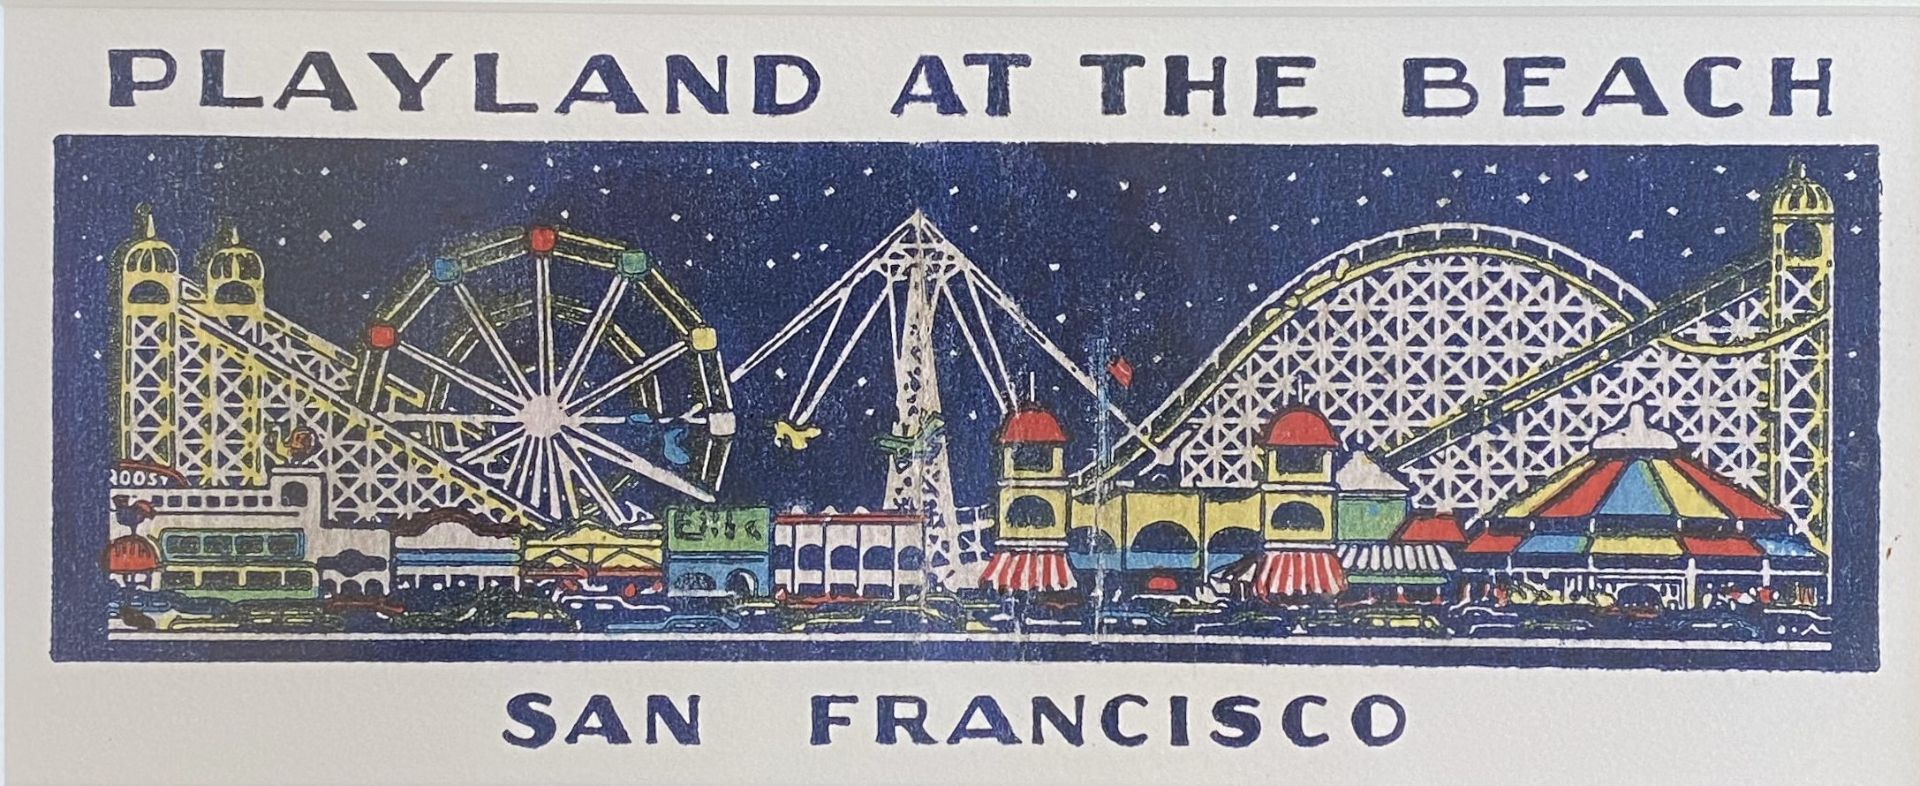 Playland at the Beach Poster - Image 2 of 2